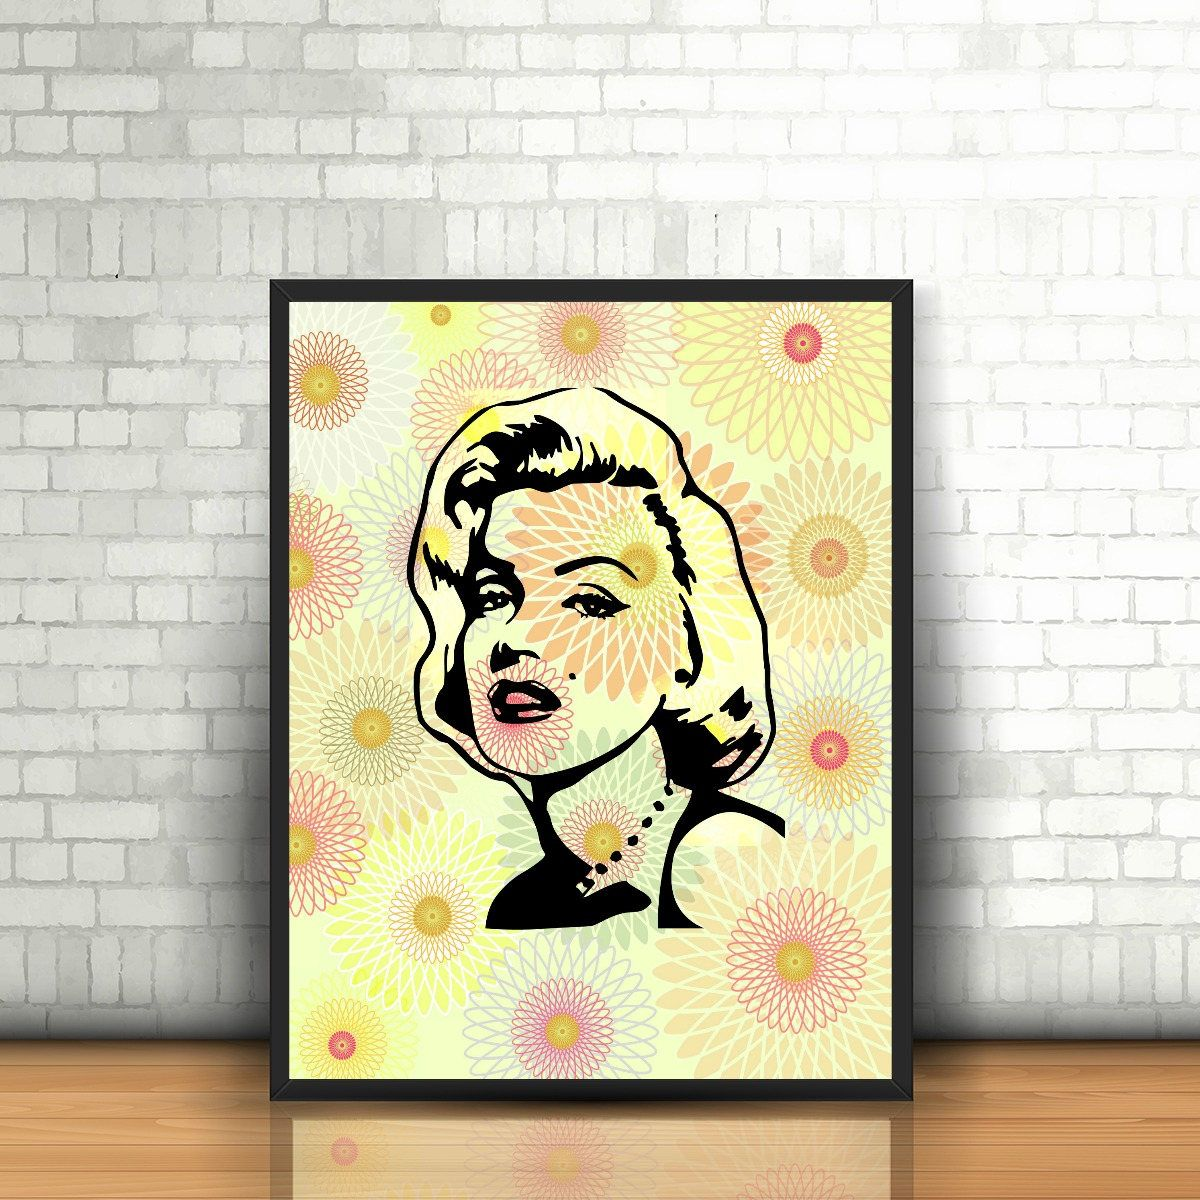 Awesome Marilyn Monroe Wall Art Motif - All About Wallart ...